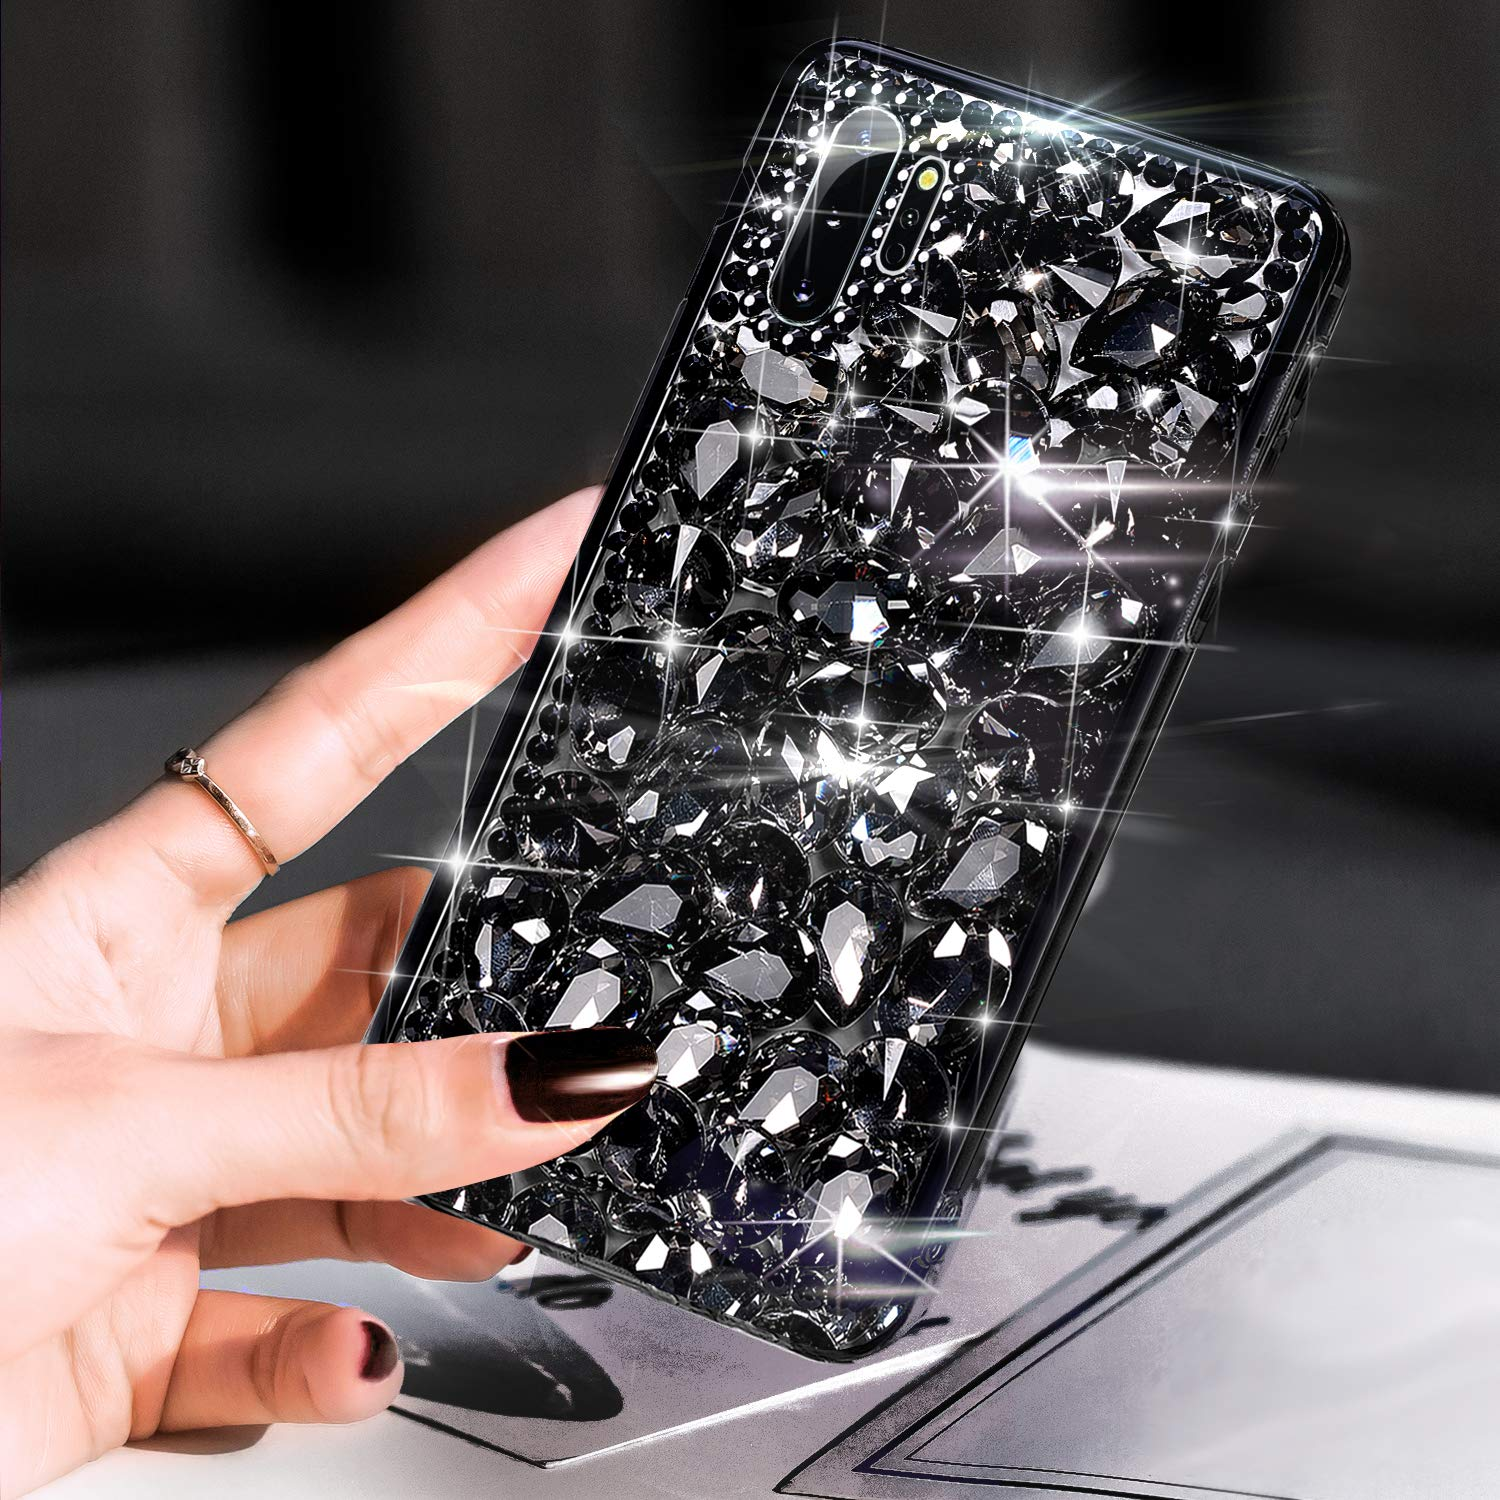 Case for Galaxy Note 10 Plus,Galaxy Note 10 Plus Diamond Case,3D Handmade Bling Rhinestone Diamonds Sparkle Rhinestones Girls Women Full Crystals Bling Diamond Case Cover for Galaxy Note 10 Plus,Black by ikasus